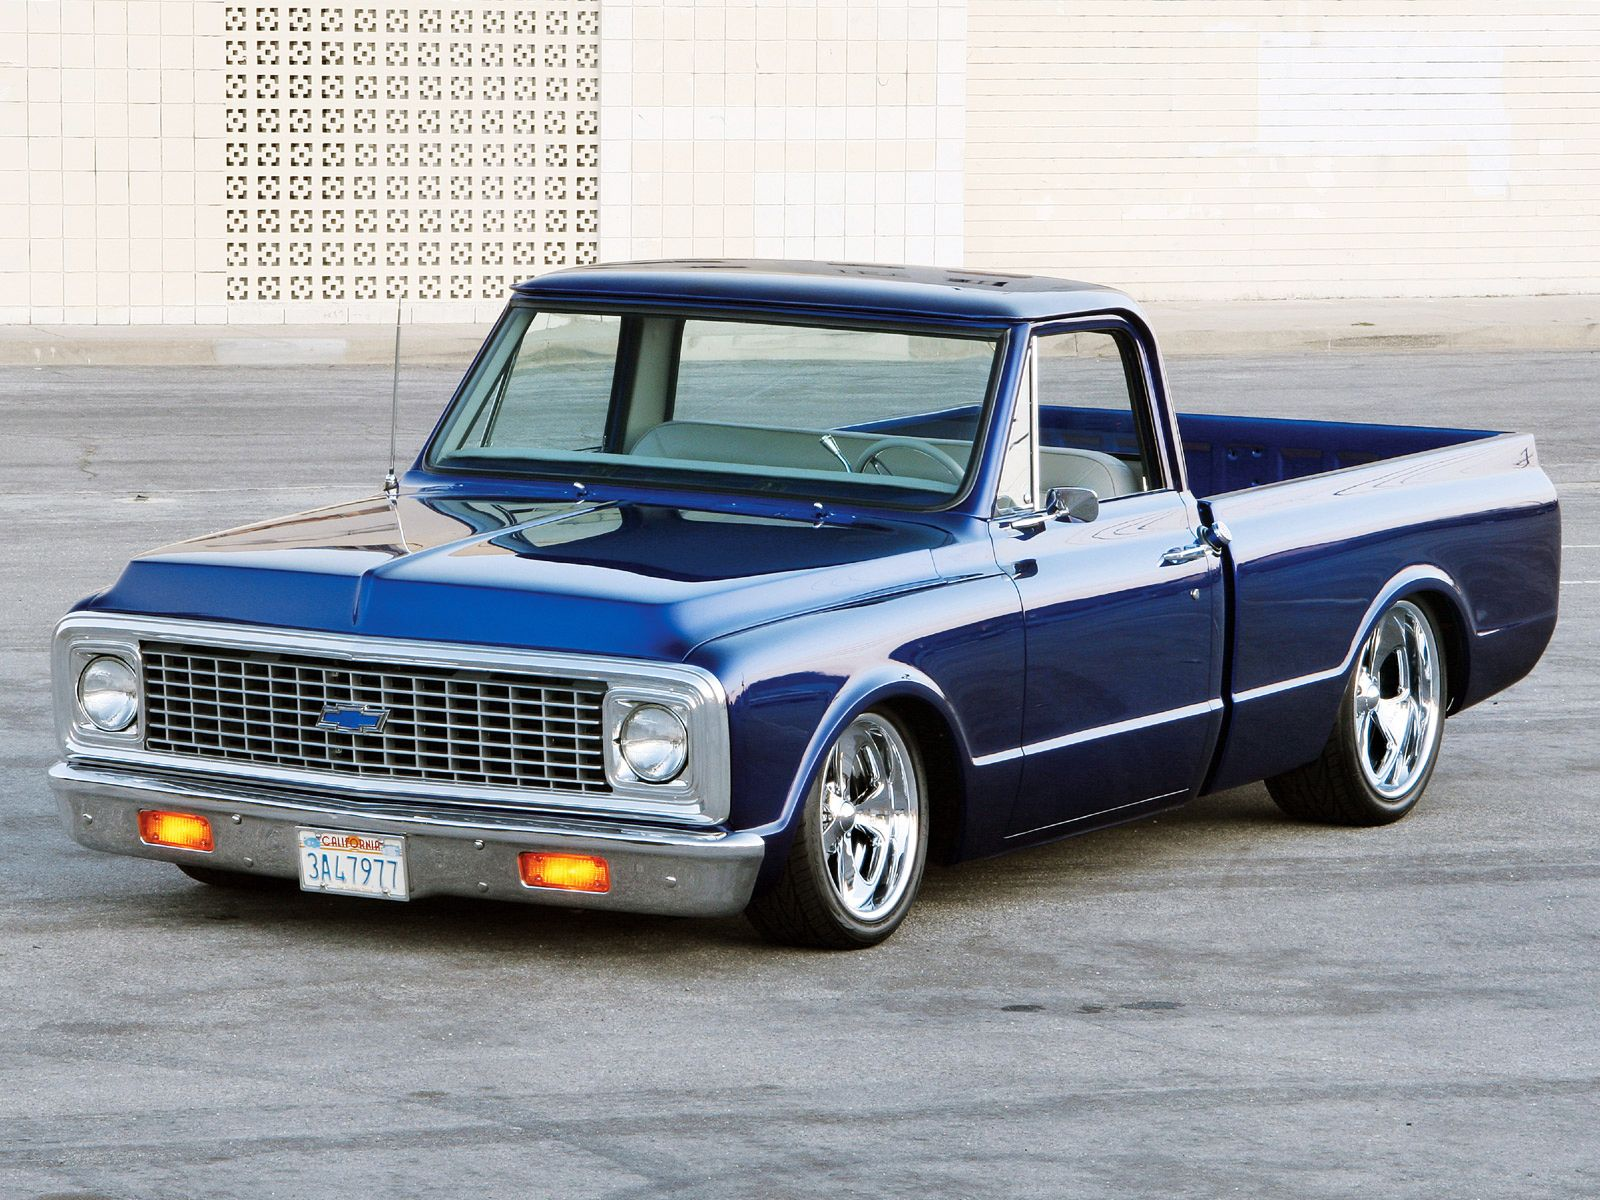 1972 chevy pickup truck never again